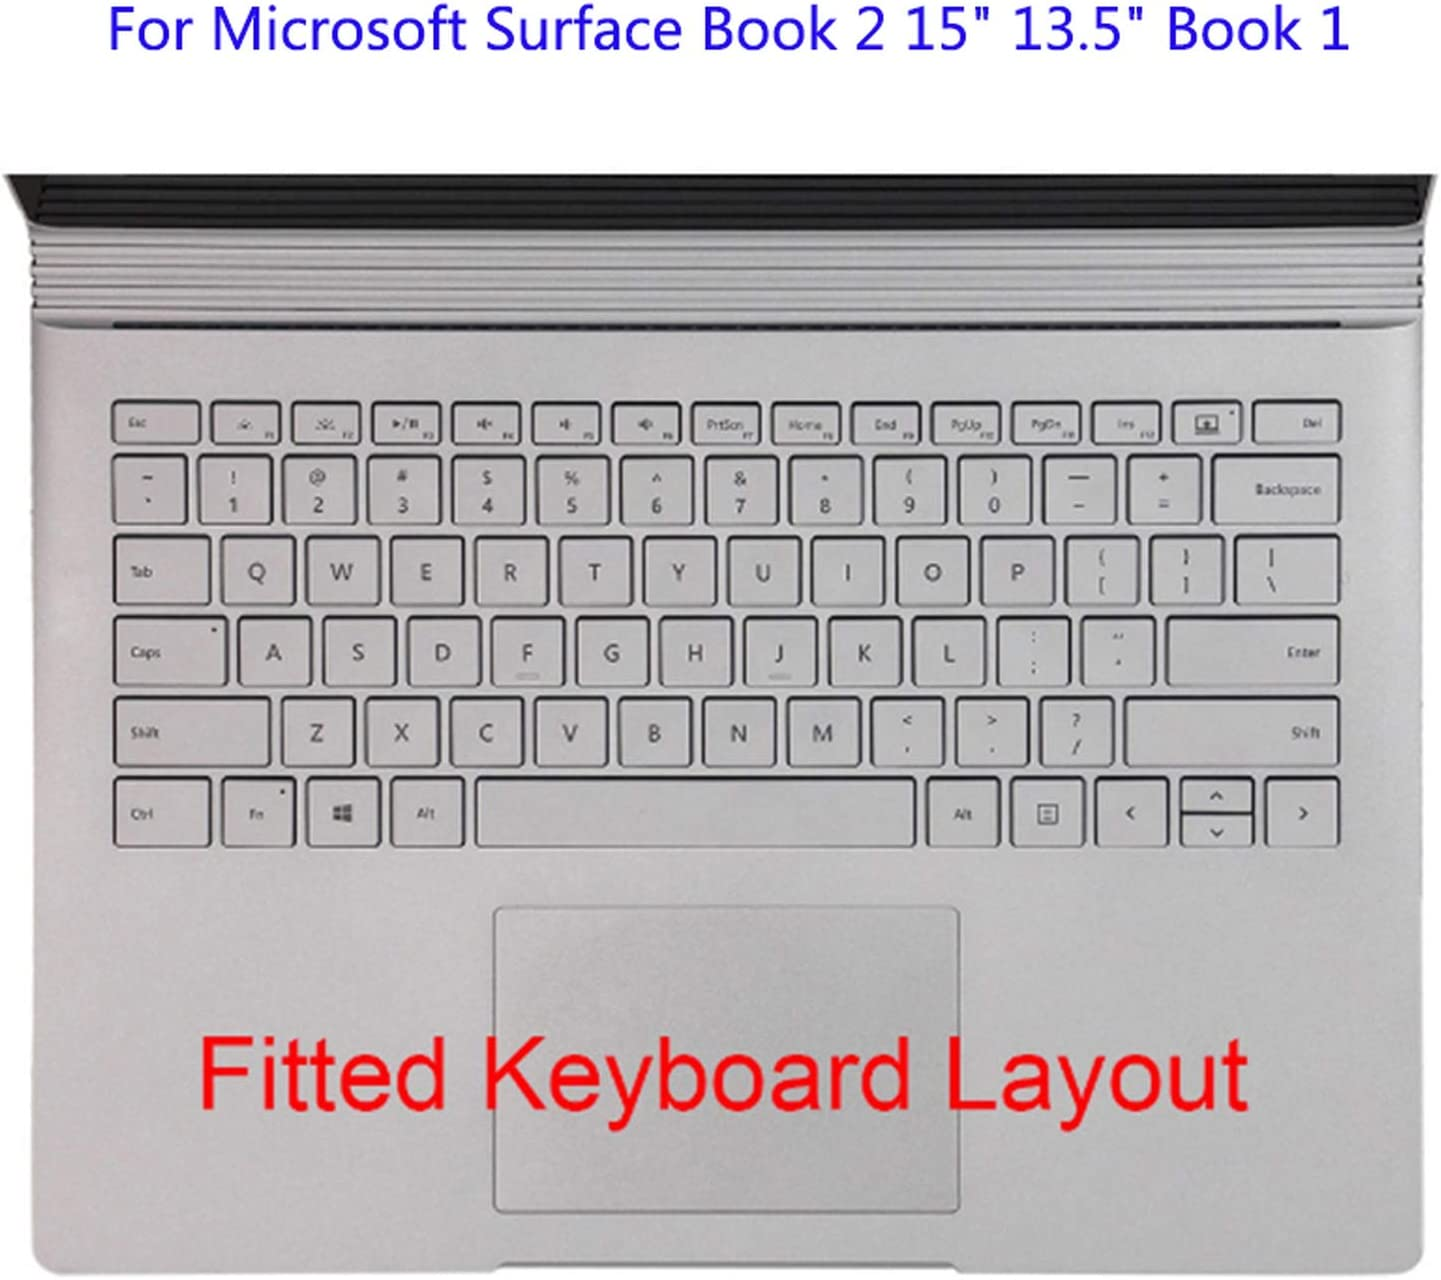 Silicone Keyboard Cover for Microsoft Surface Laptop 2 1 Soft Keyboard Skin Protector Film for Surface Book 2 1 New Pro 6 5 4-for Laptop 2 11